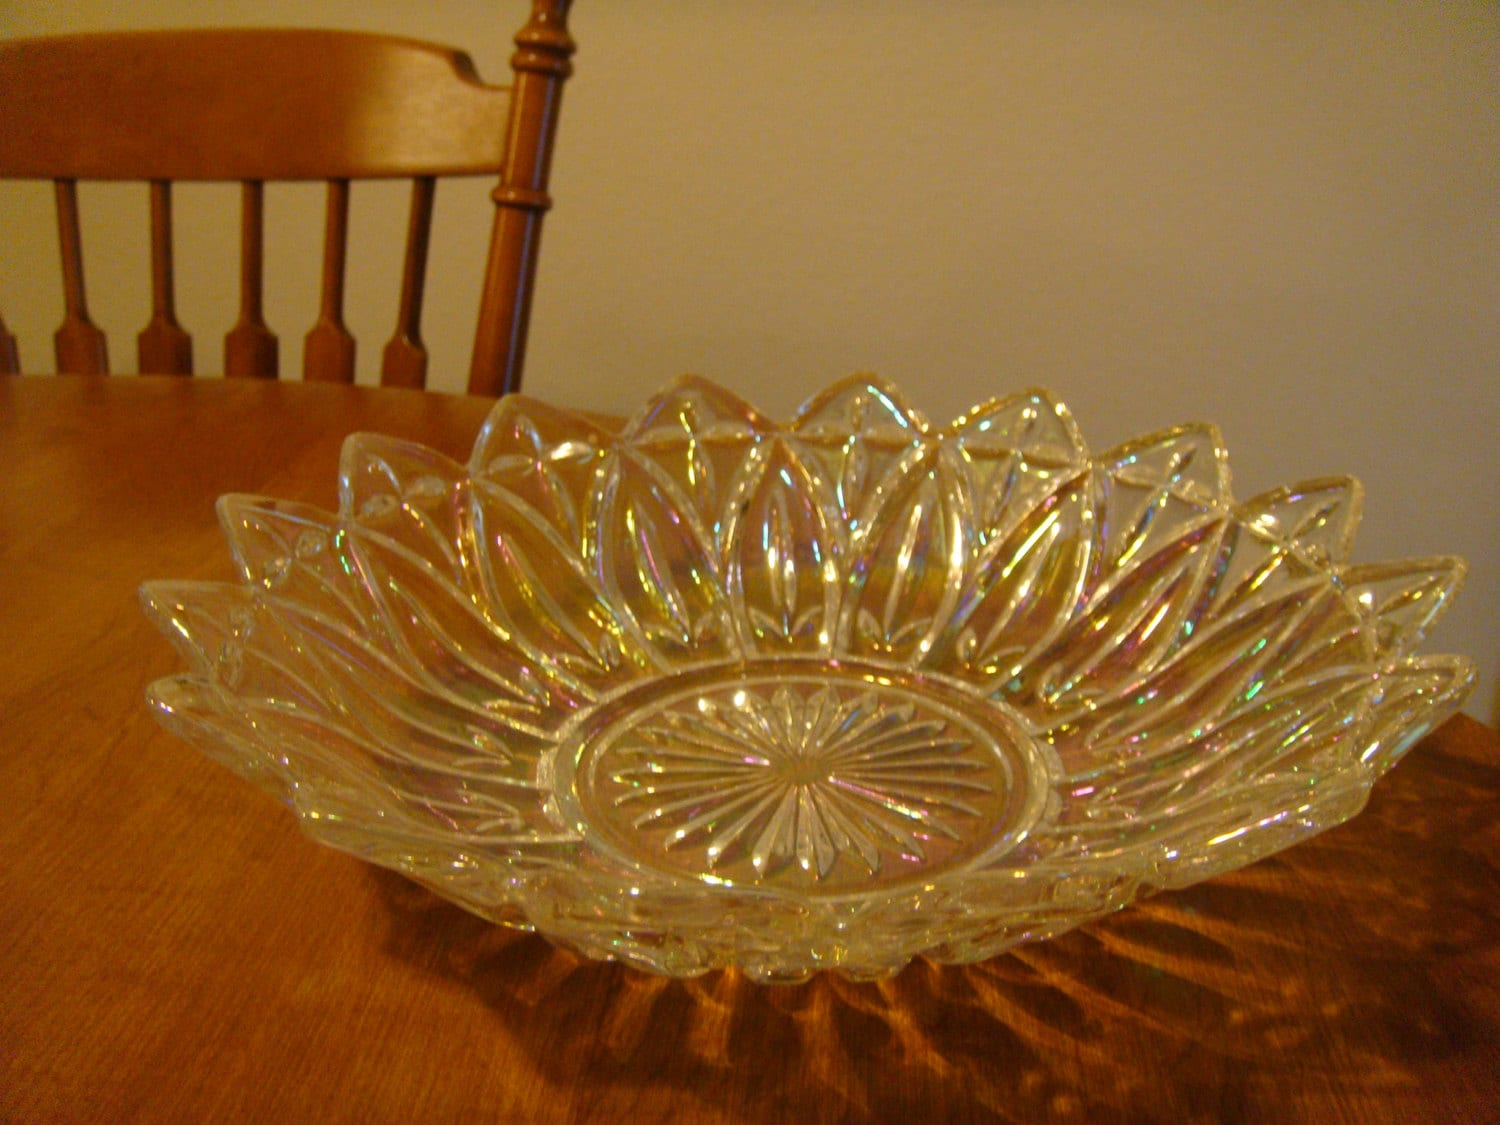 Glass bowl depression glass bowl indiana glass dish for Most valuable depression glass patterns